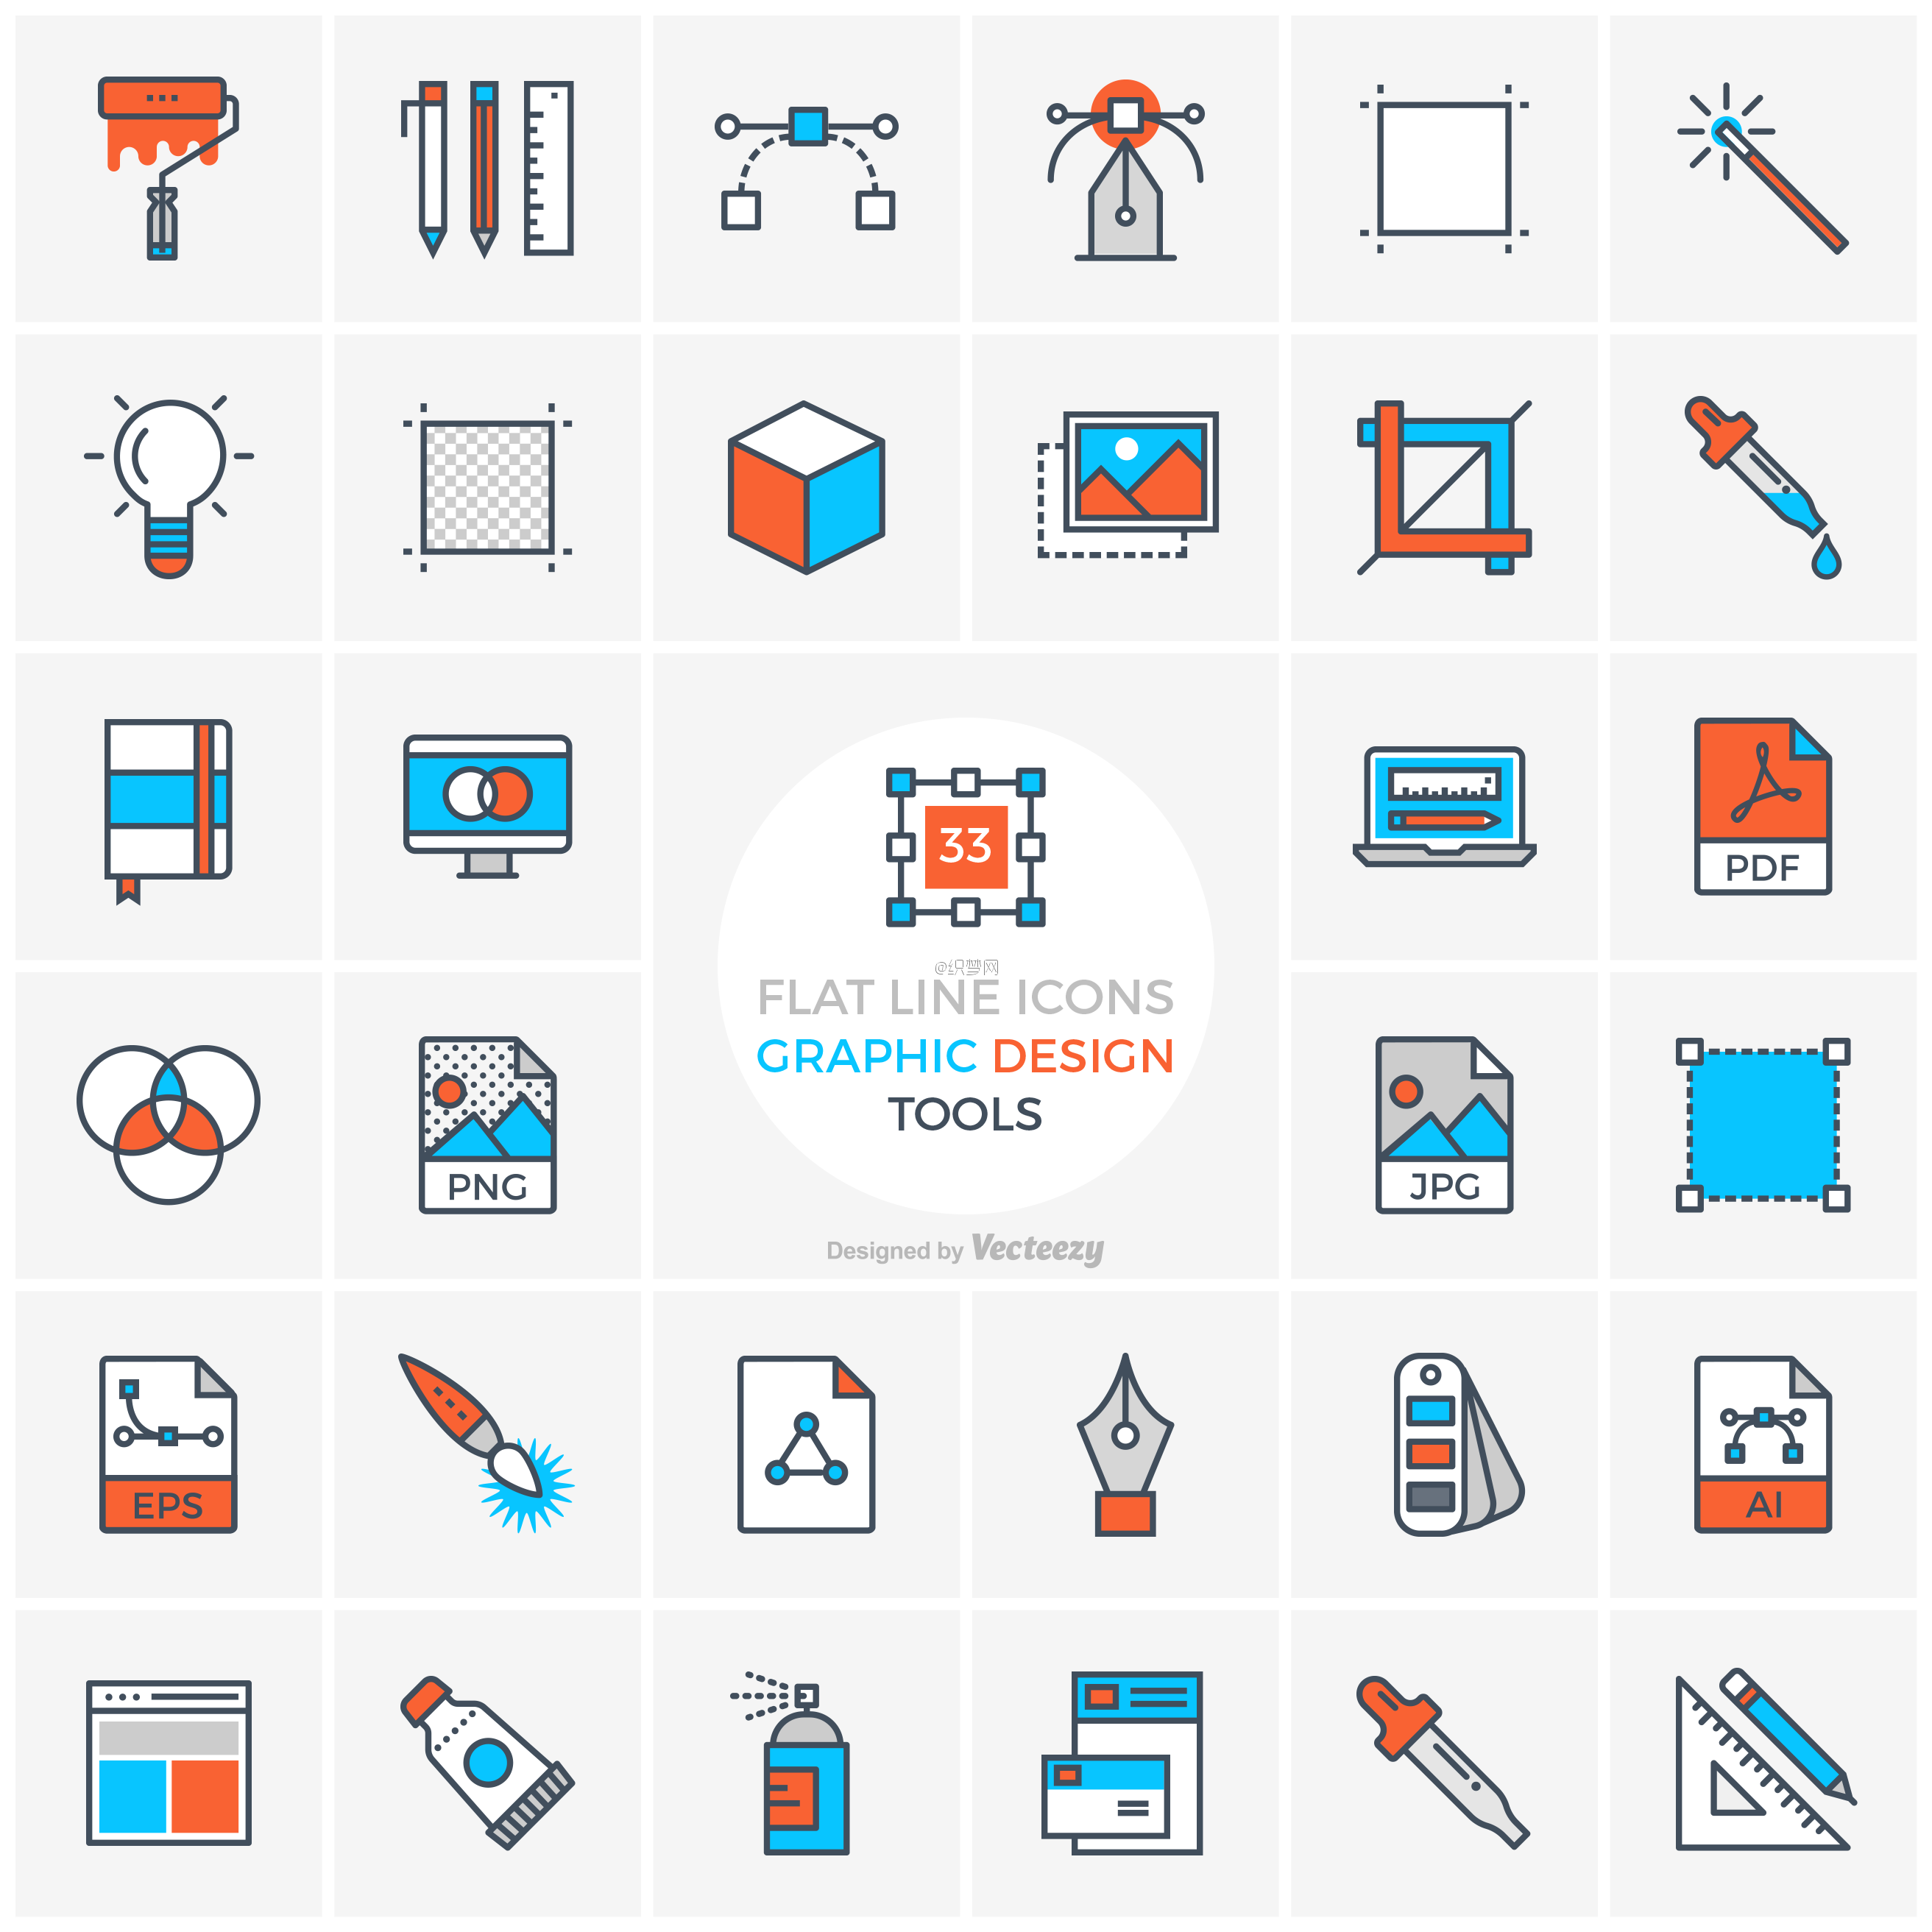 flat-line-graphic-design-tools-icons.png